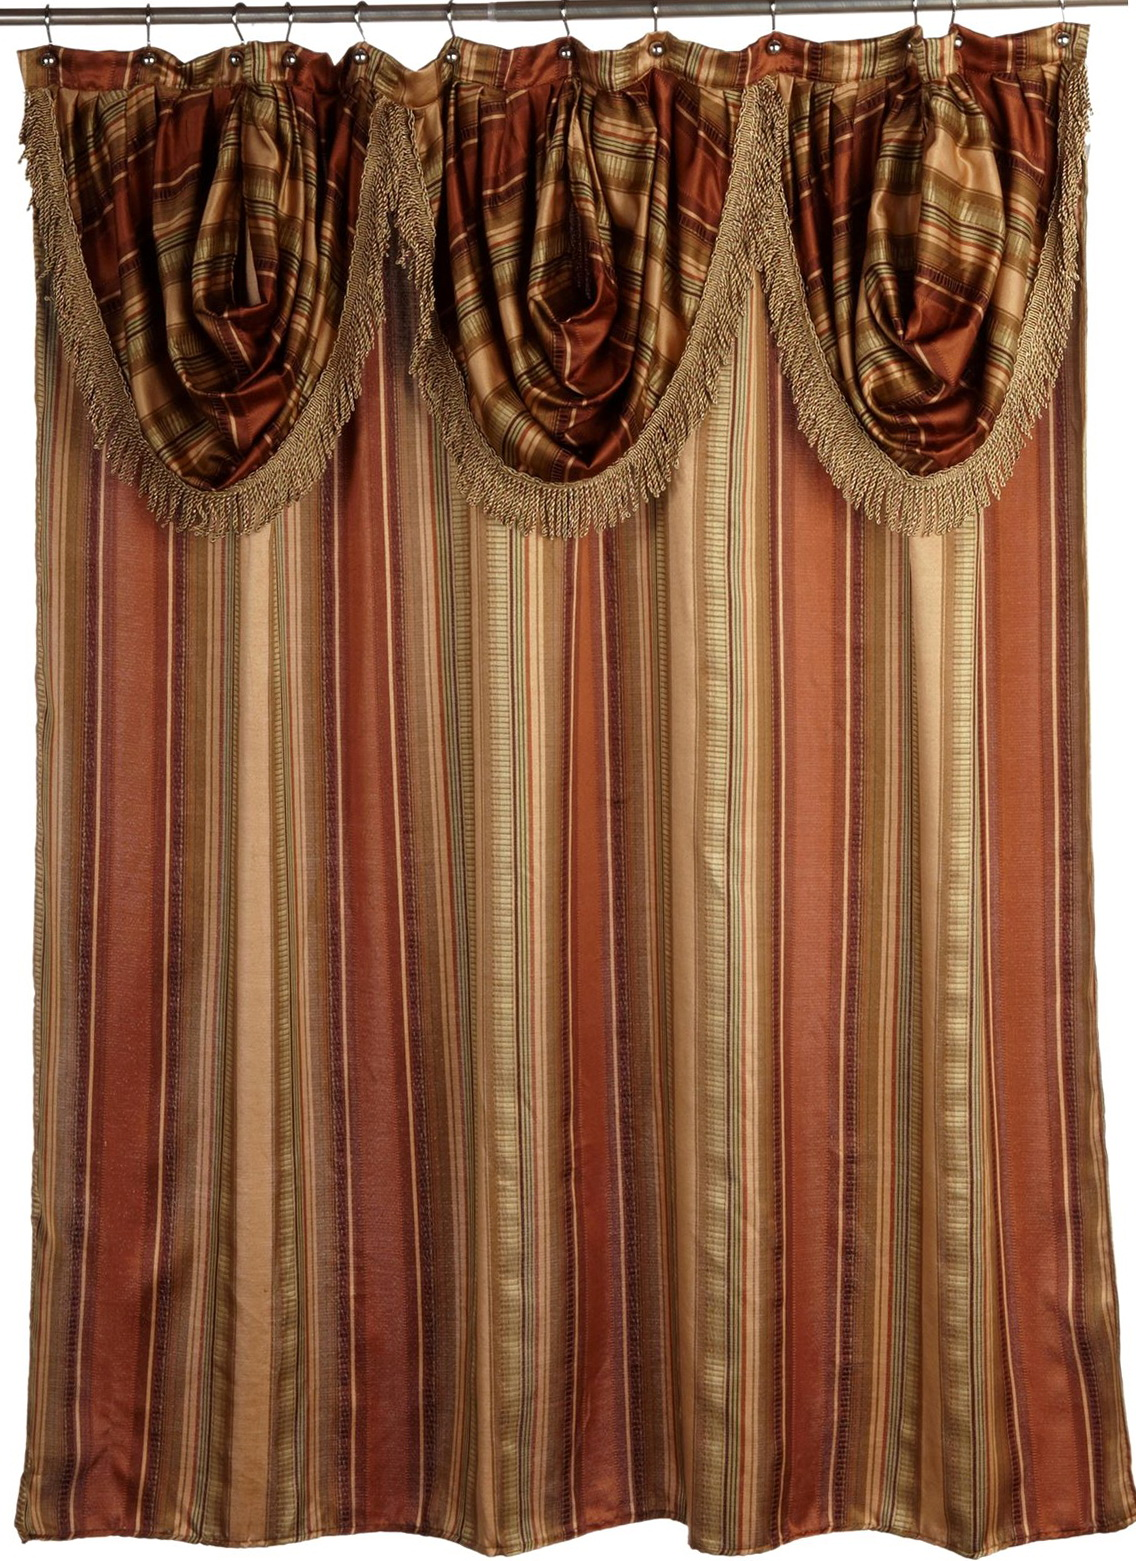 Curtain With Valance Attached